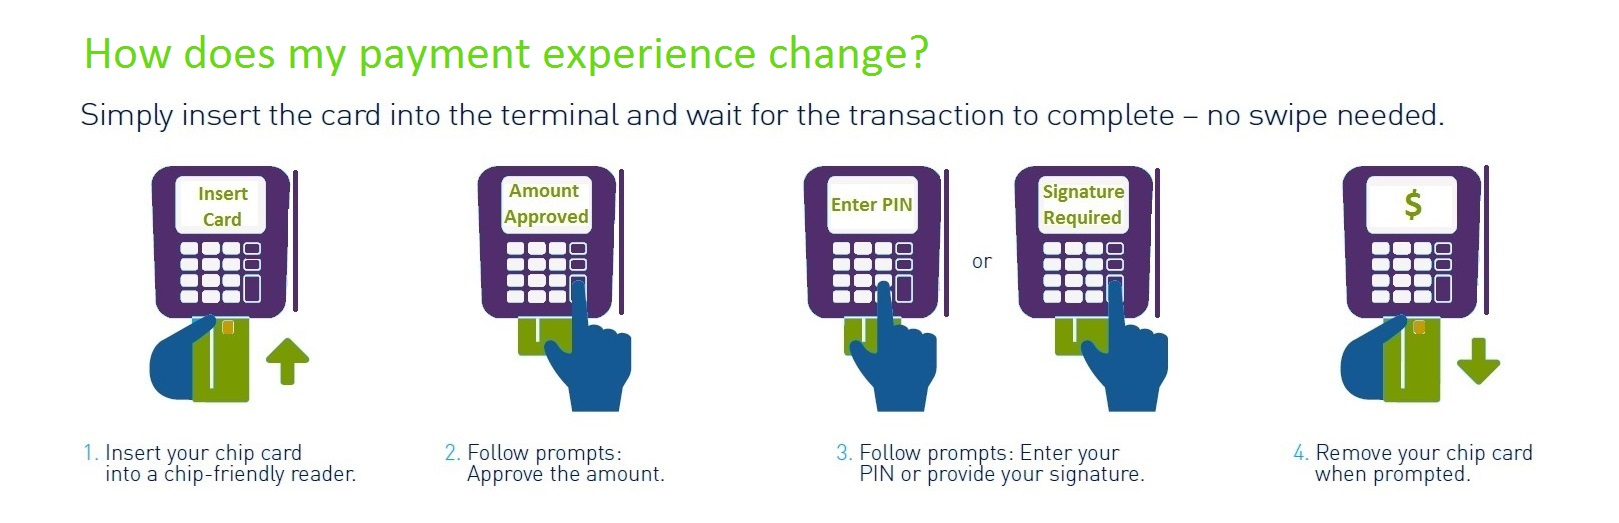 Directions for EMV use